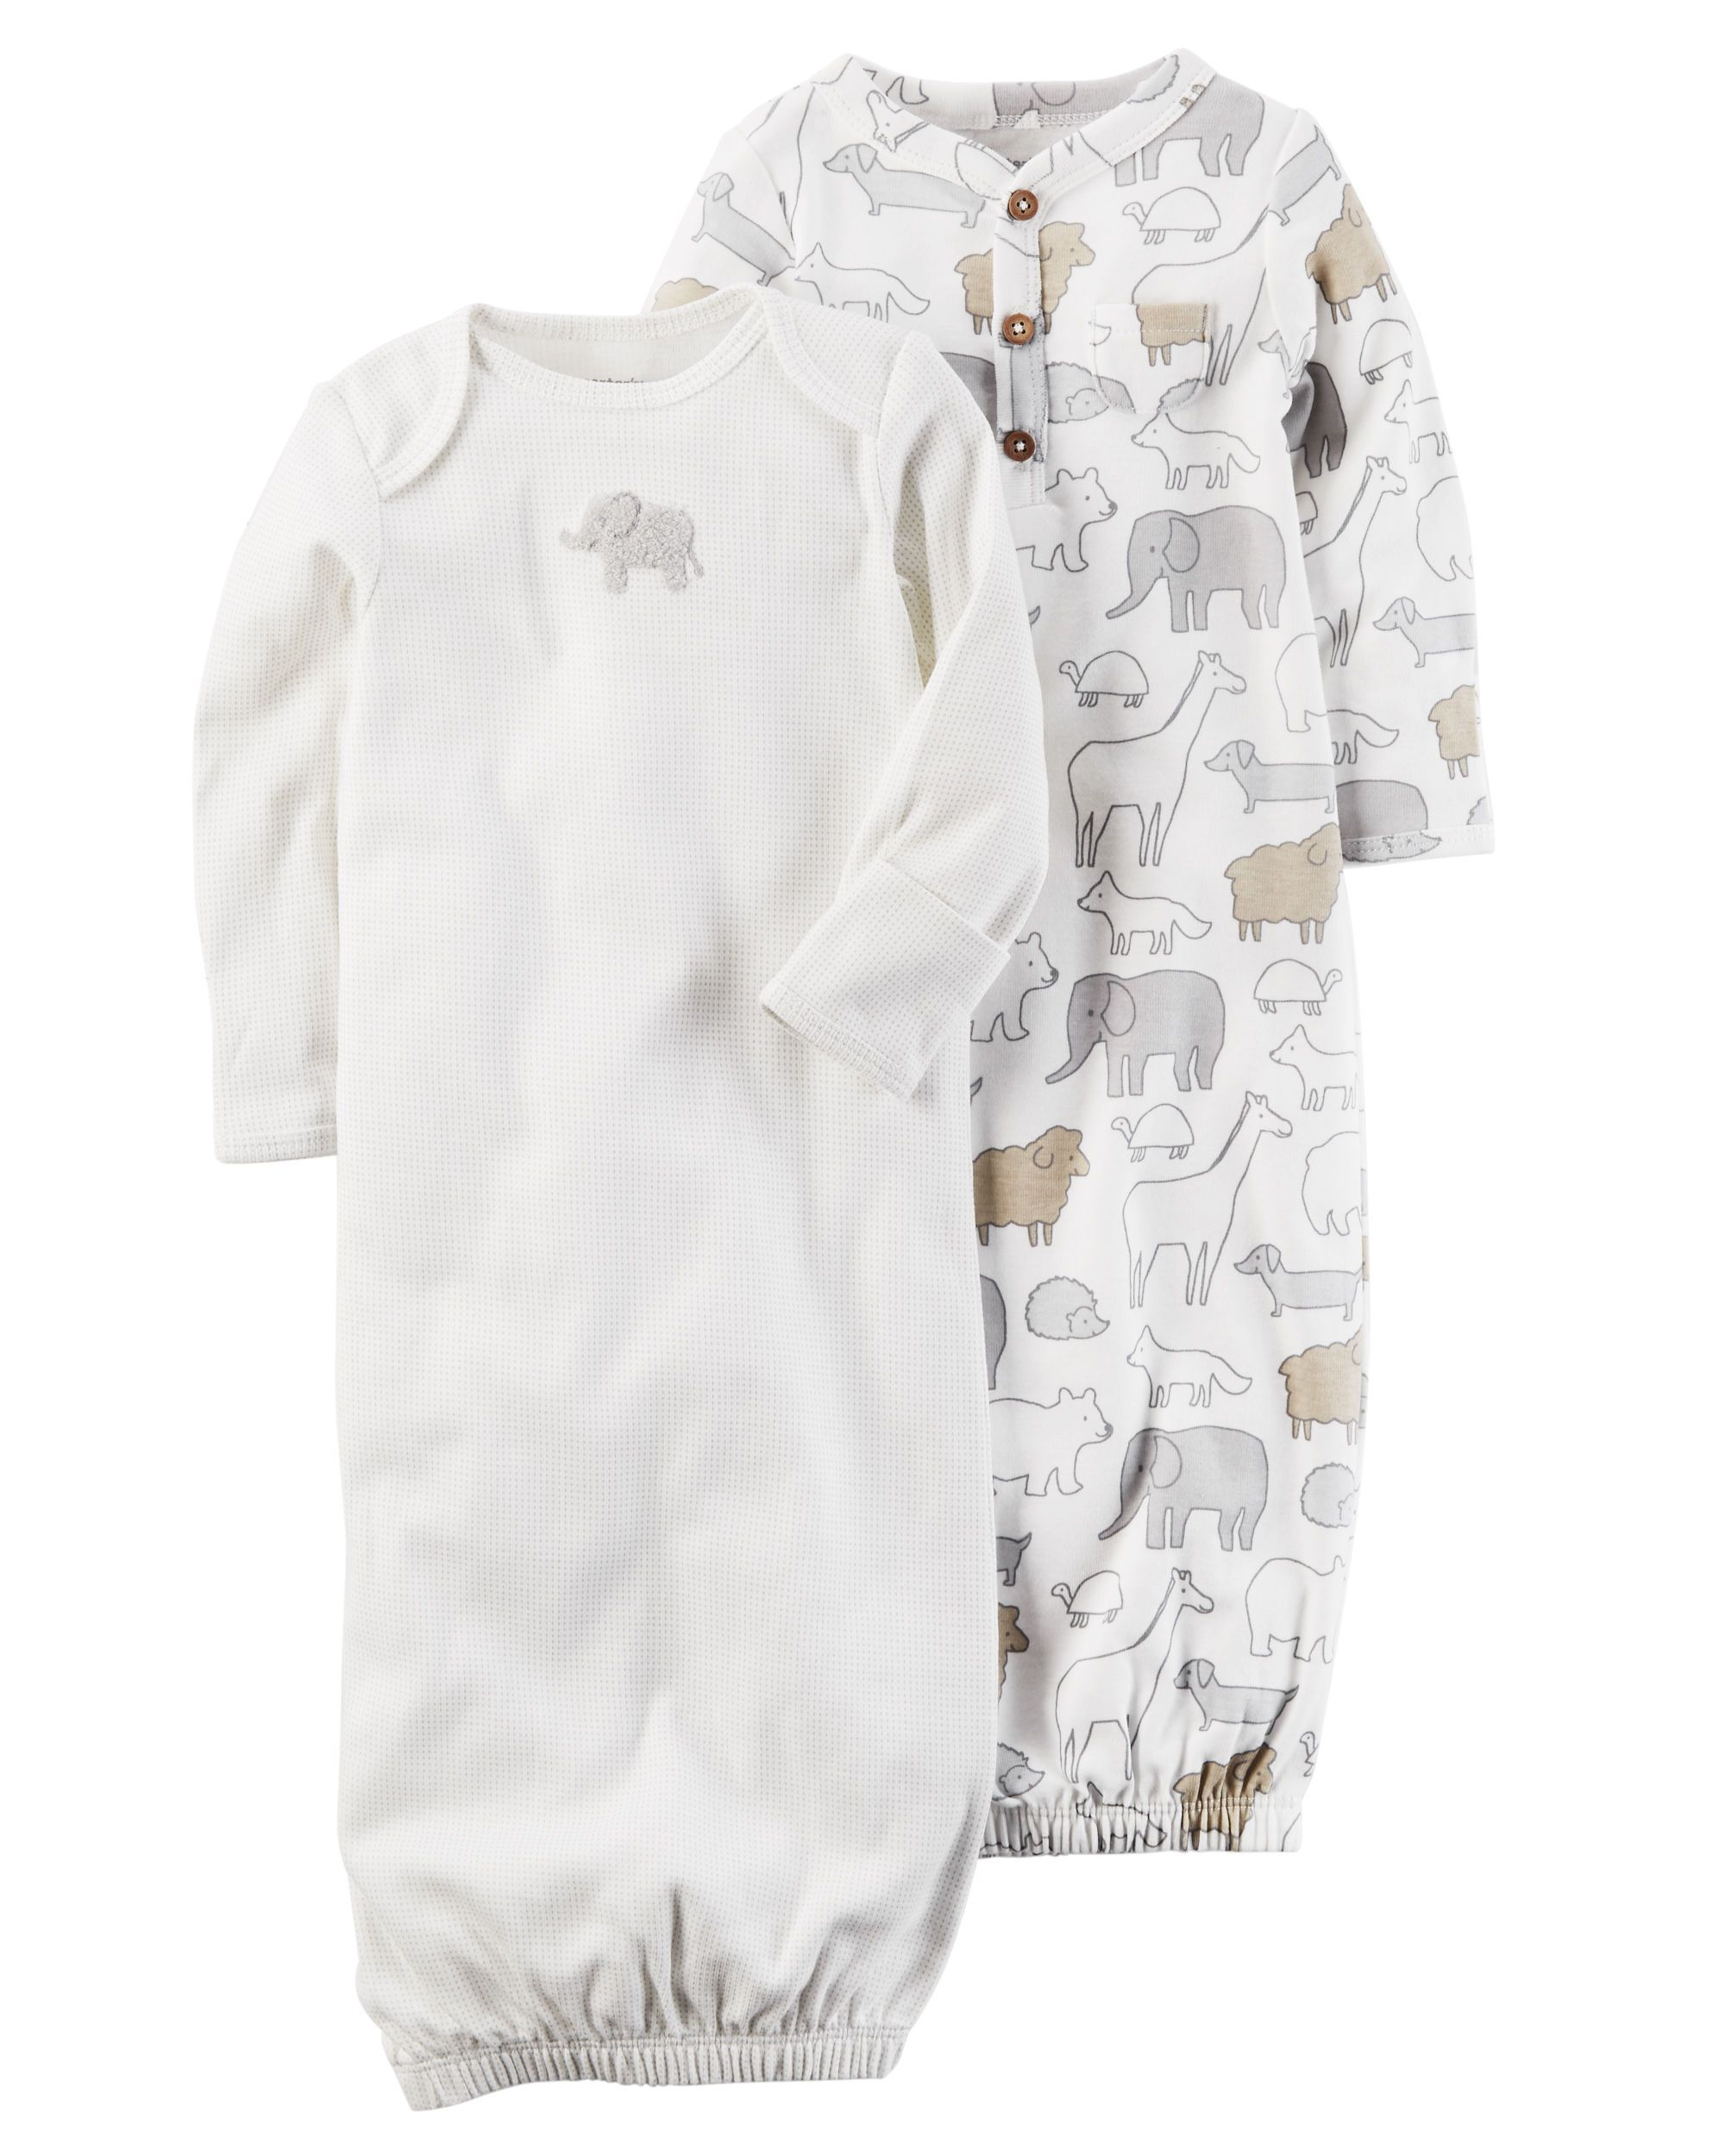 2-Pack Babysoft Sleeper Gowns | Babies clothes and Babies